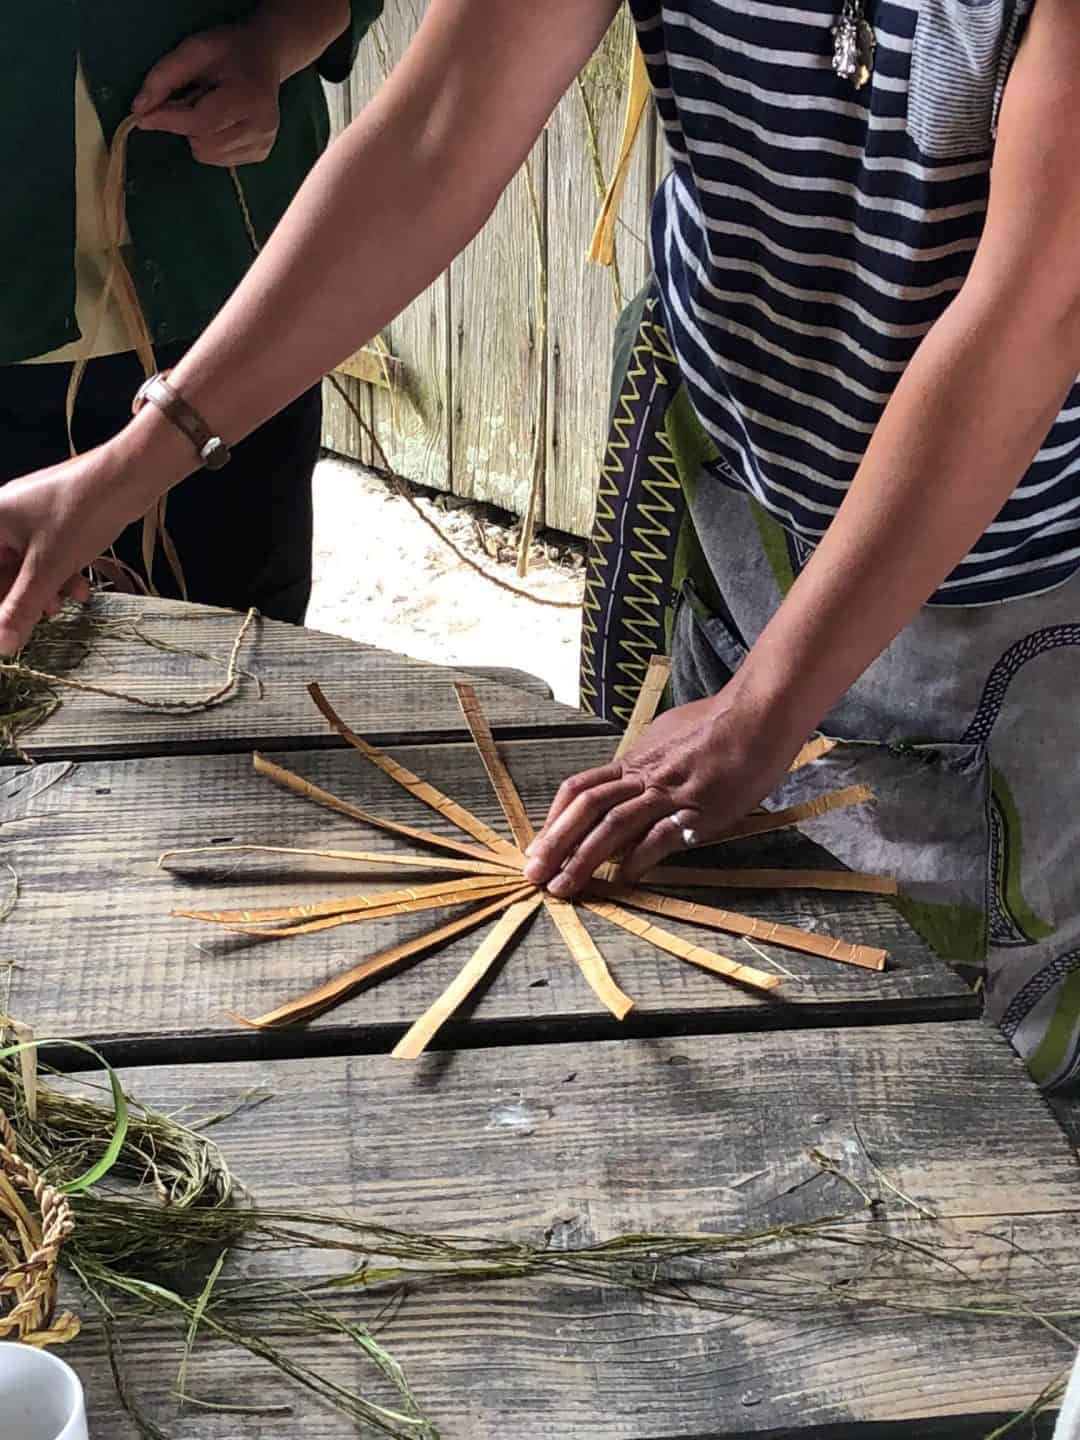 trill farm basket making workshop foraged chestnut bark. Click through to discover more creative workshops